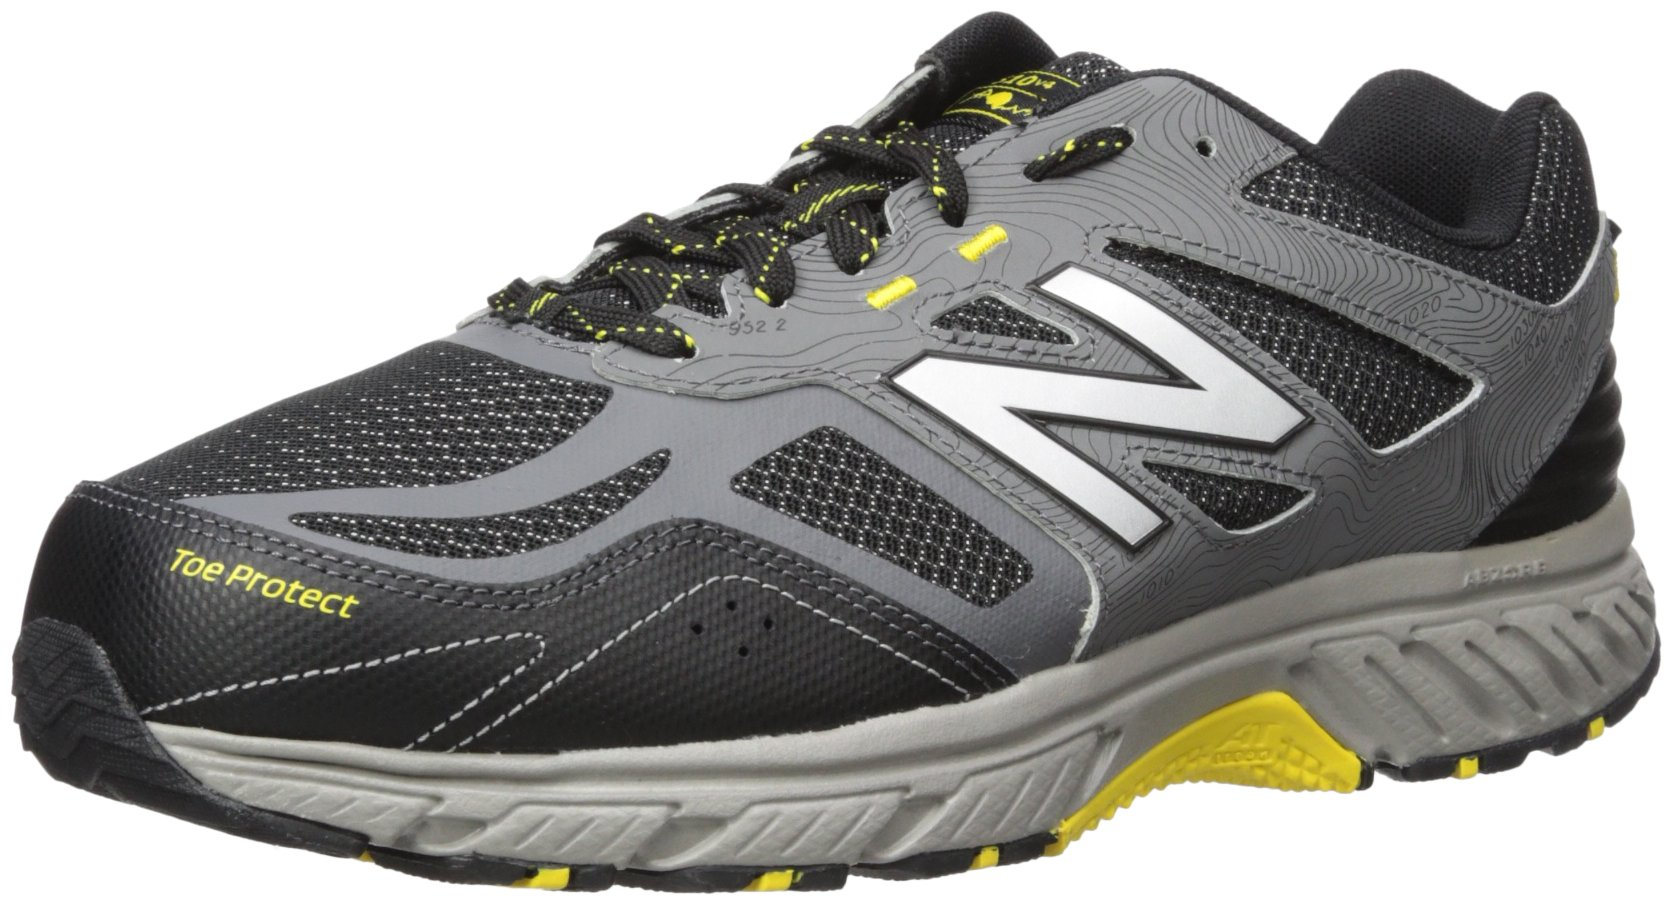 New Balance Men's 510v4 Cushioning Trail Running Shoe, Castlerock, 11.5 D US